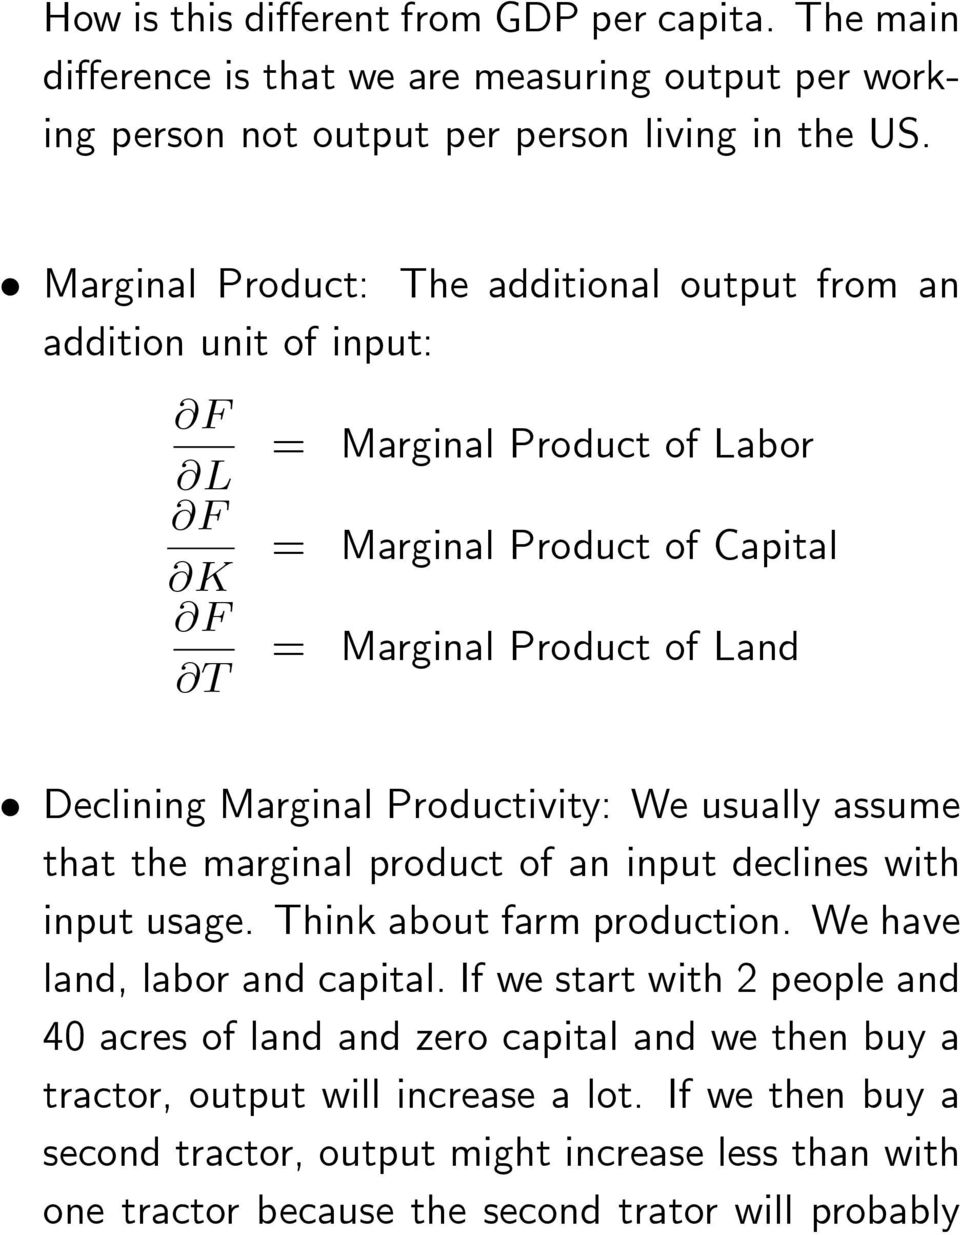 Maginal Poductivity: We usually assume that the maginal poduct of an input declines ith input usage. Think about fam poduction. We have land, labo and capital.